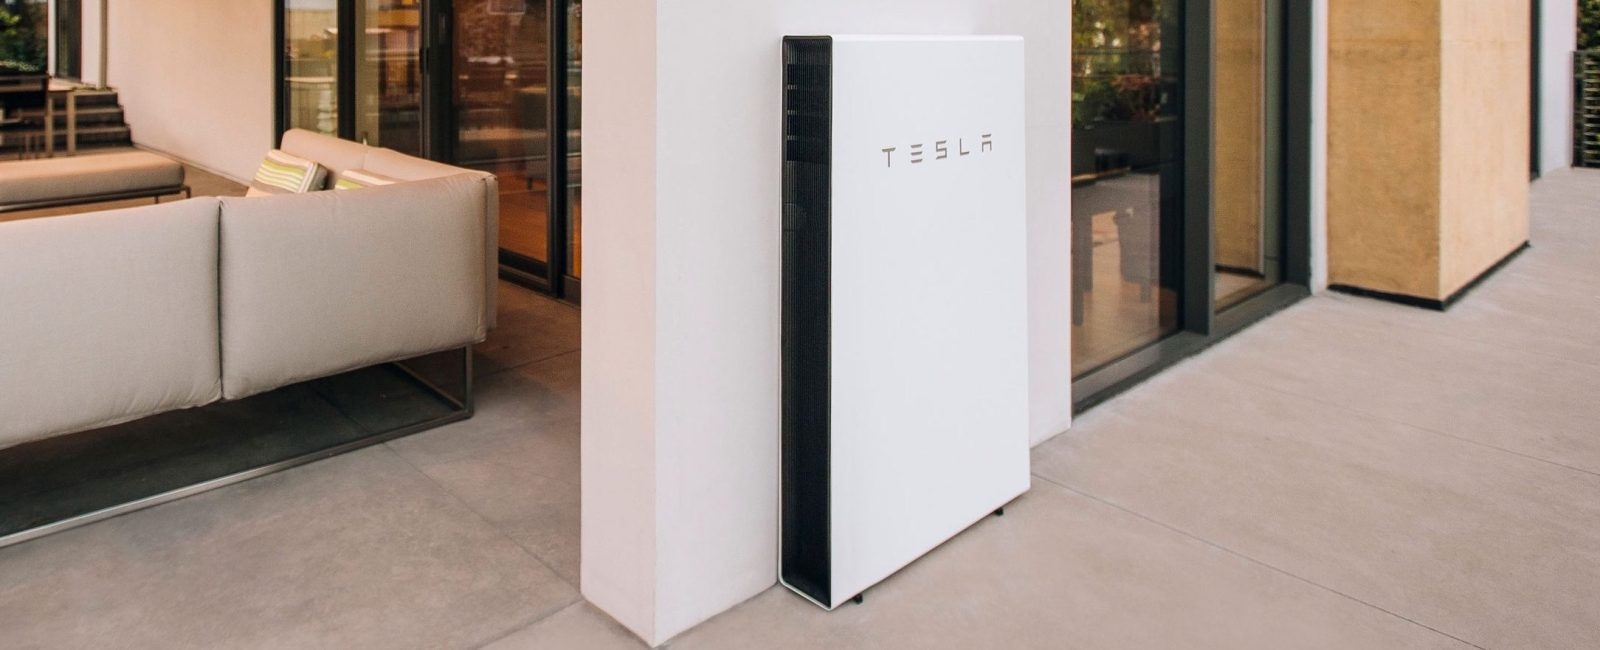 Tesla expands Powerwall installations to Japan